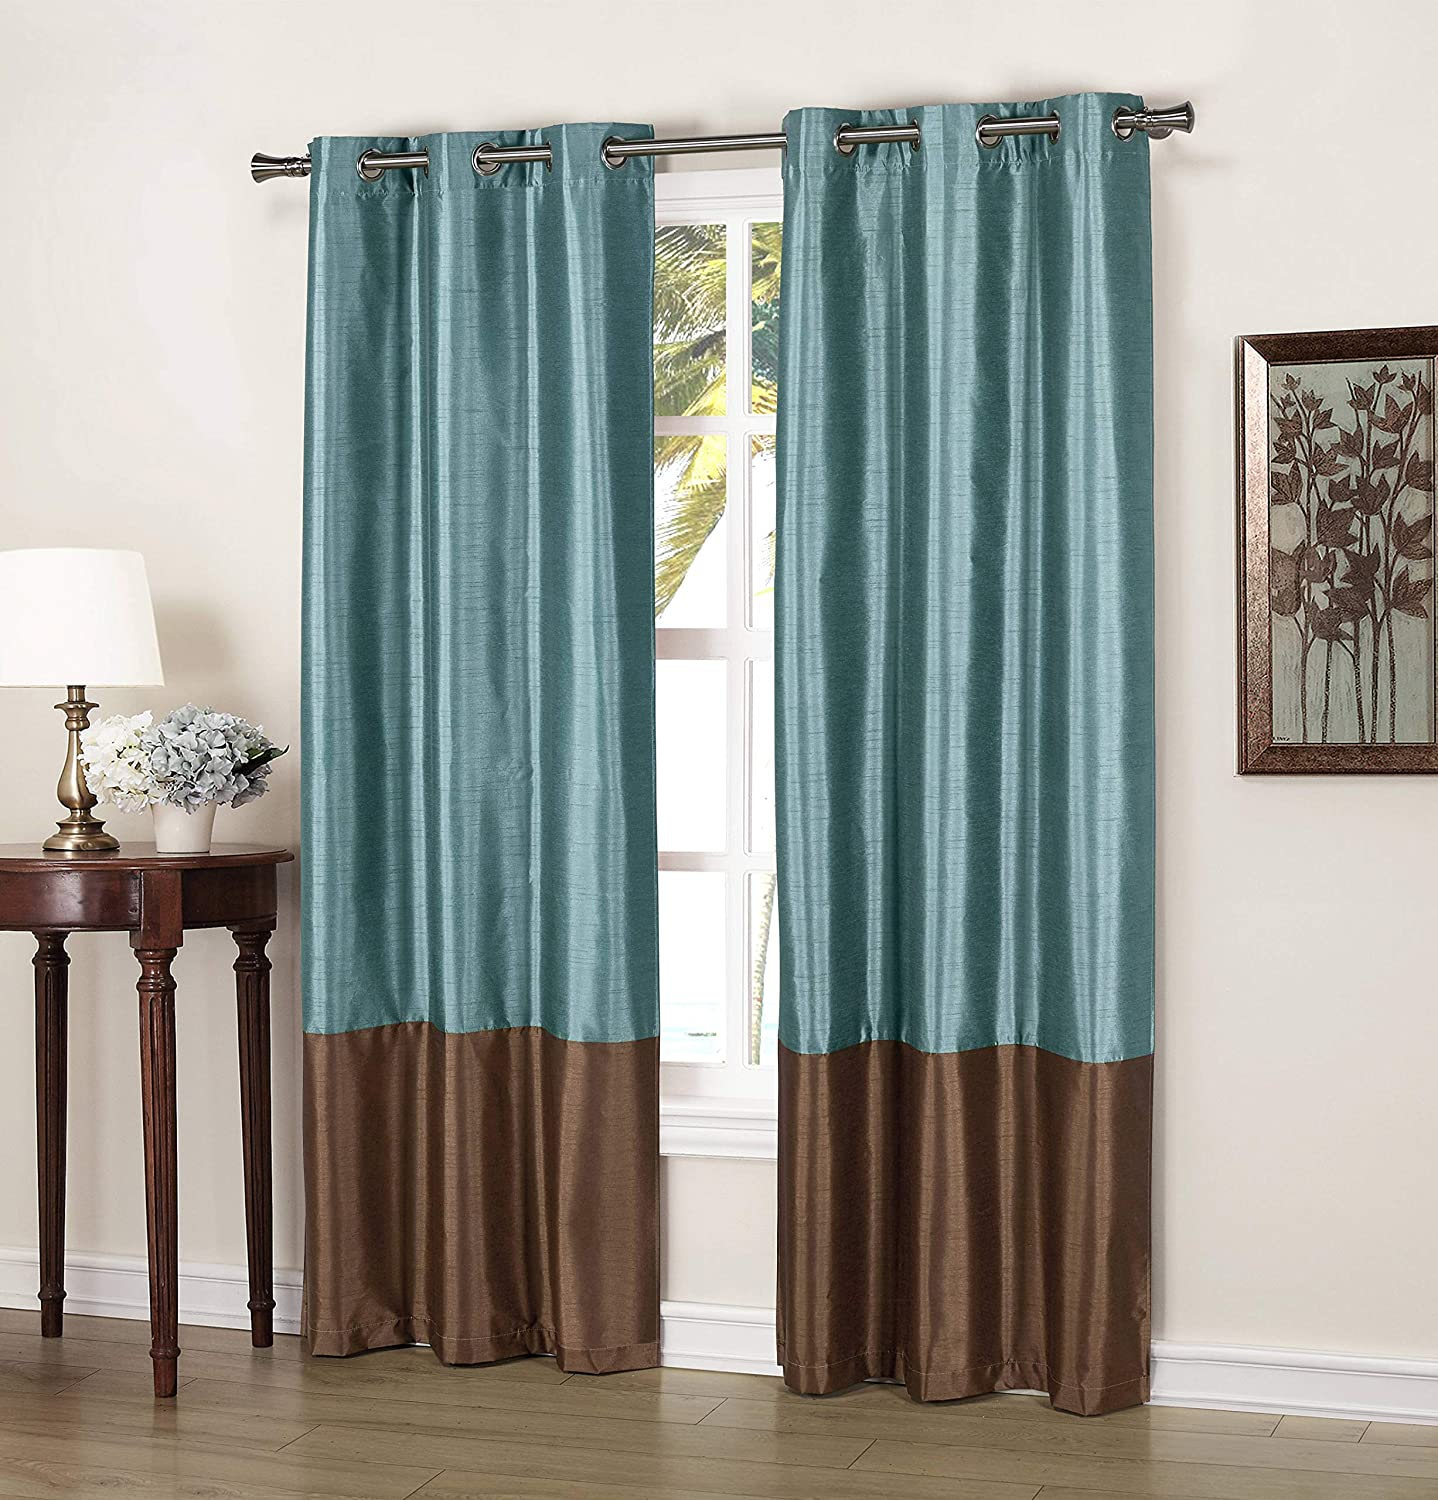 Duck River Textiles - Home Fashion Faux Silk Thermal Blackout Room Darkening Grommet Top Window Curtains Pair Panel Drapes for Bedroom, Living Room - Set of 2 Panels - 37 X 84 Inch - Blue & Brown